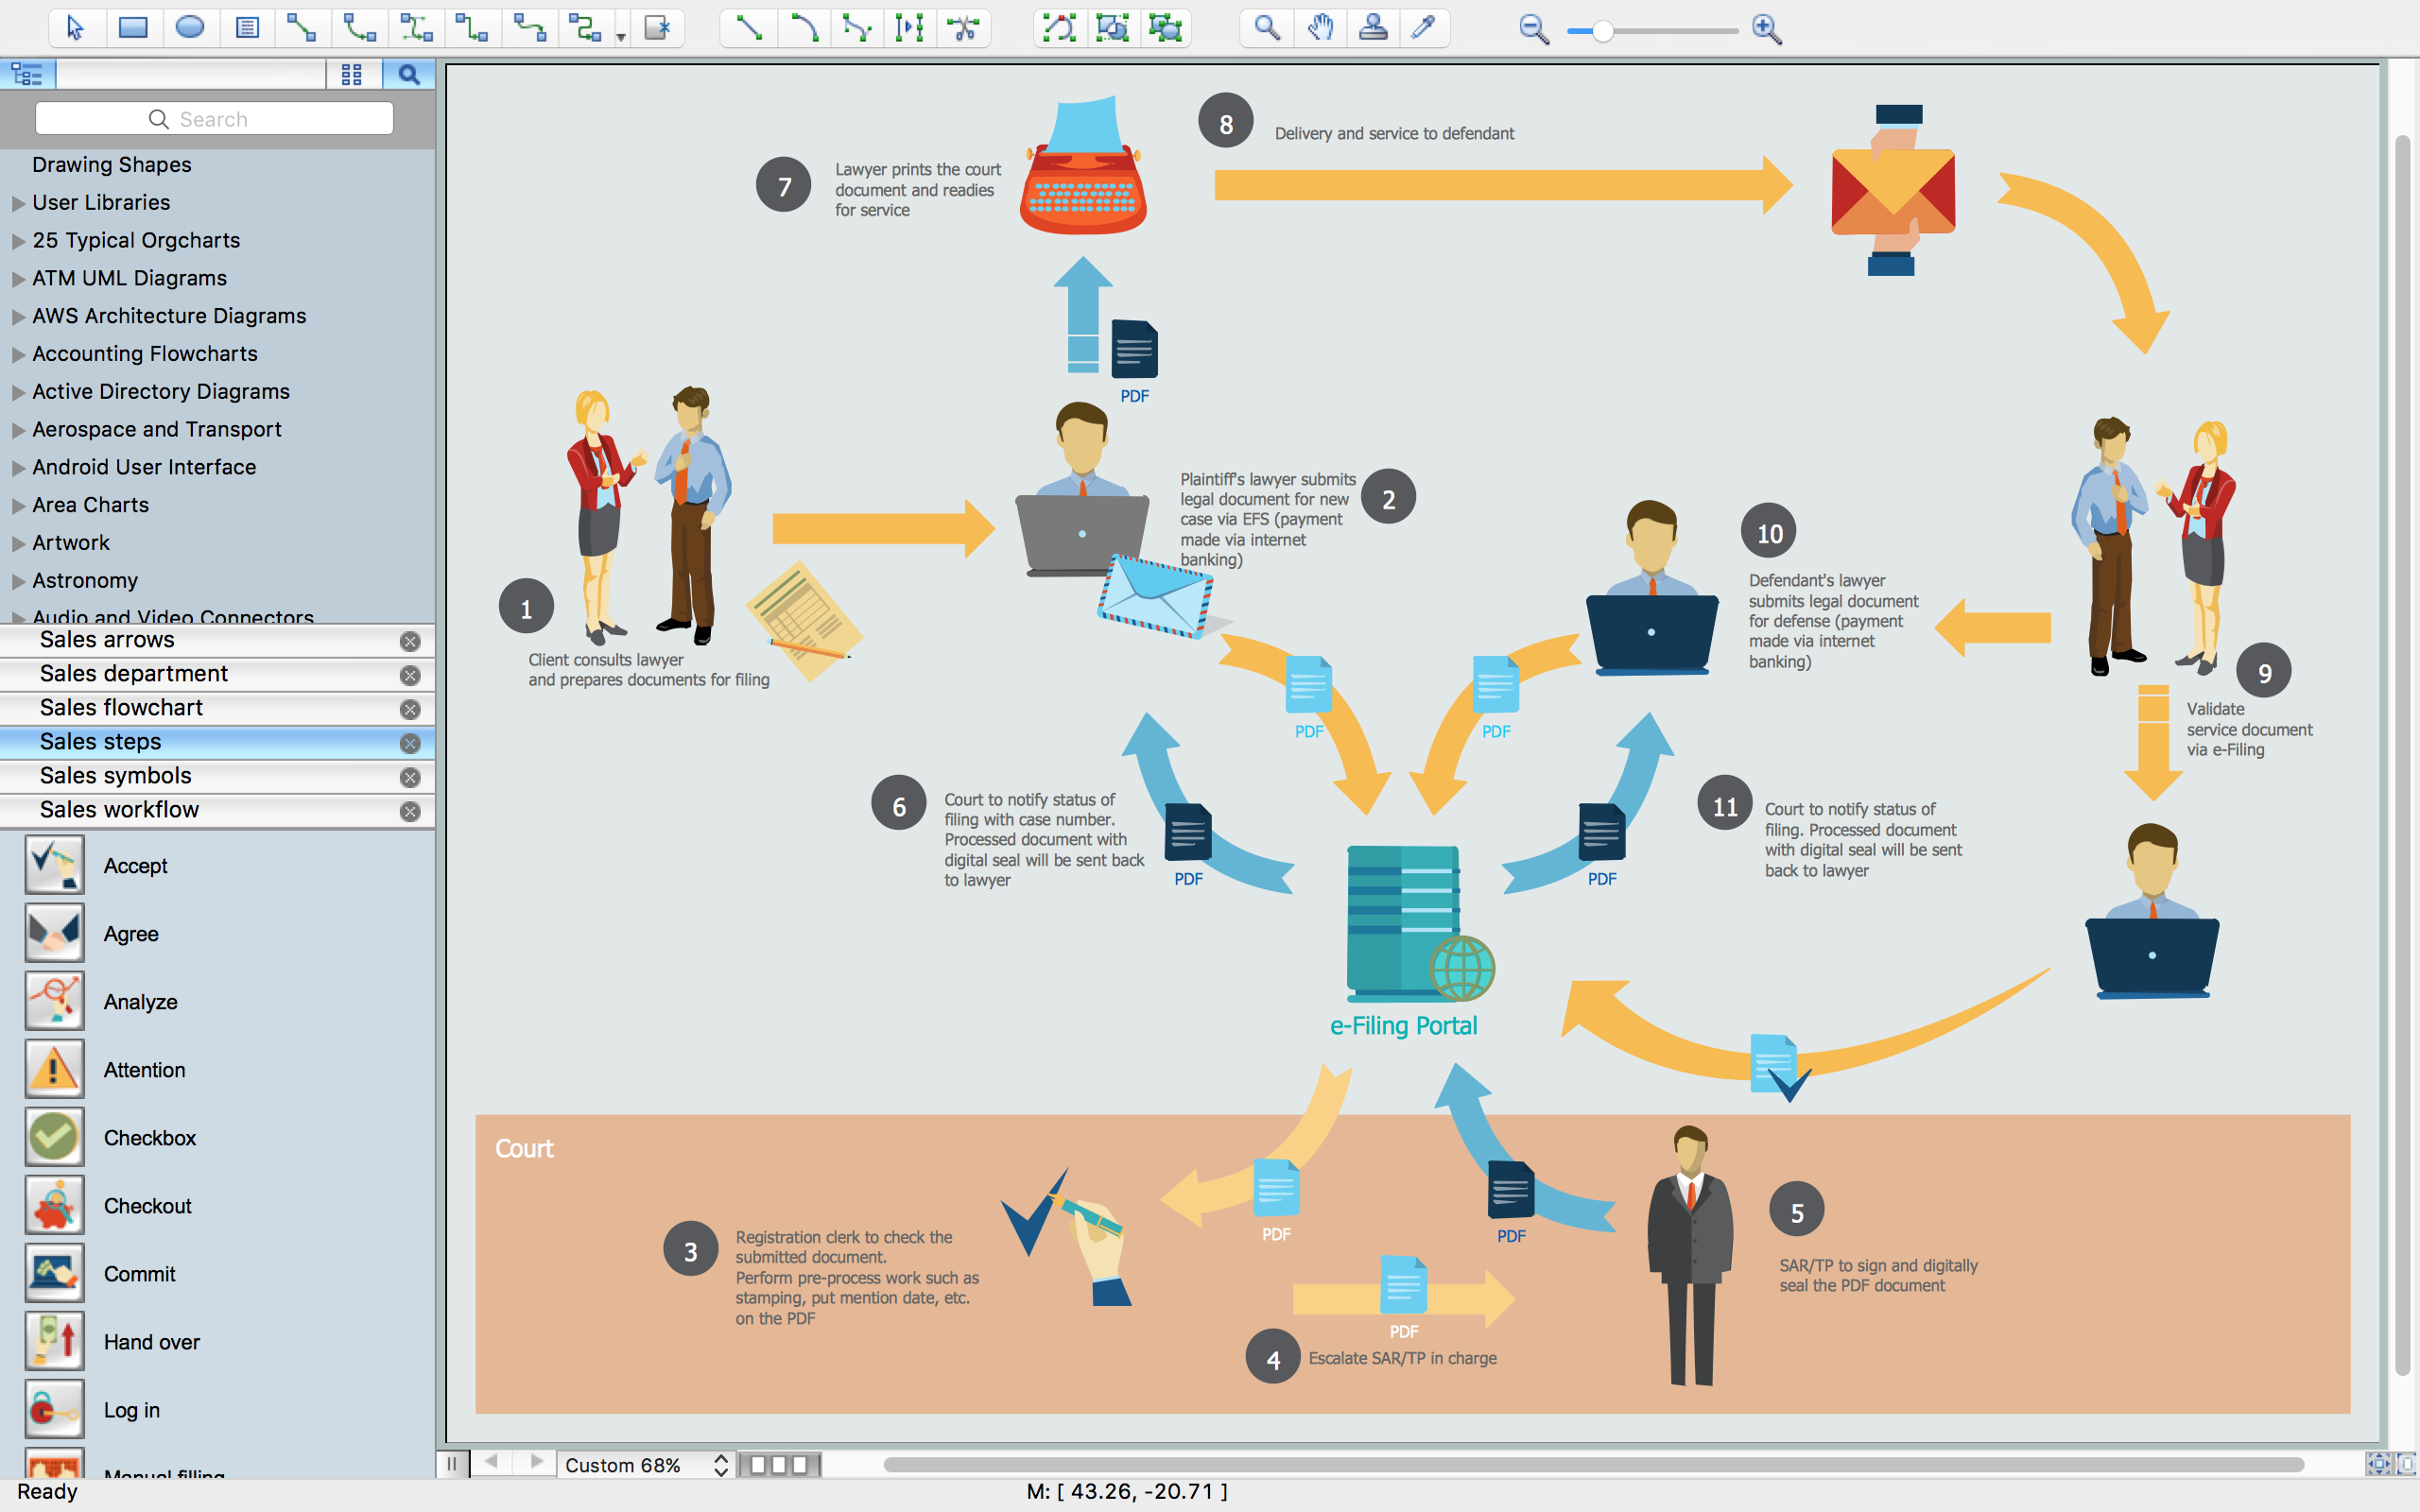 Sales flowchart symbols color coded flowchart symbols sales process flowchart geenschuldenfo Image collections